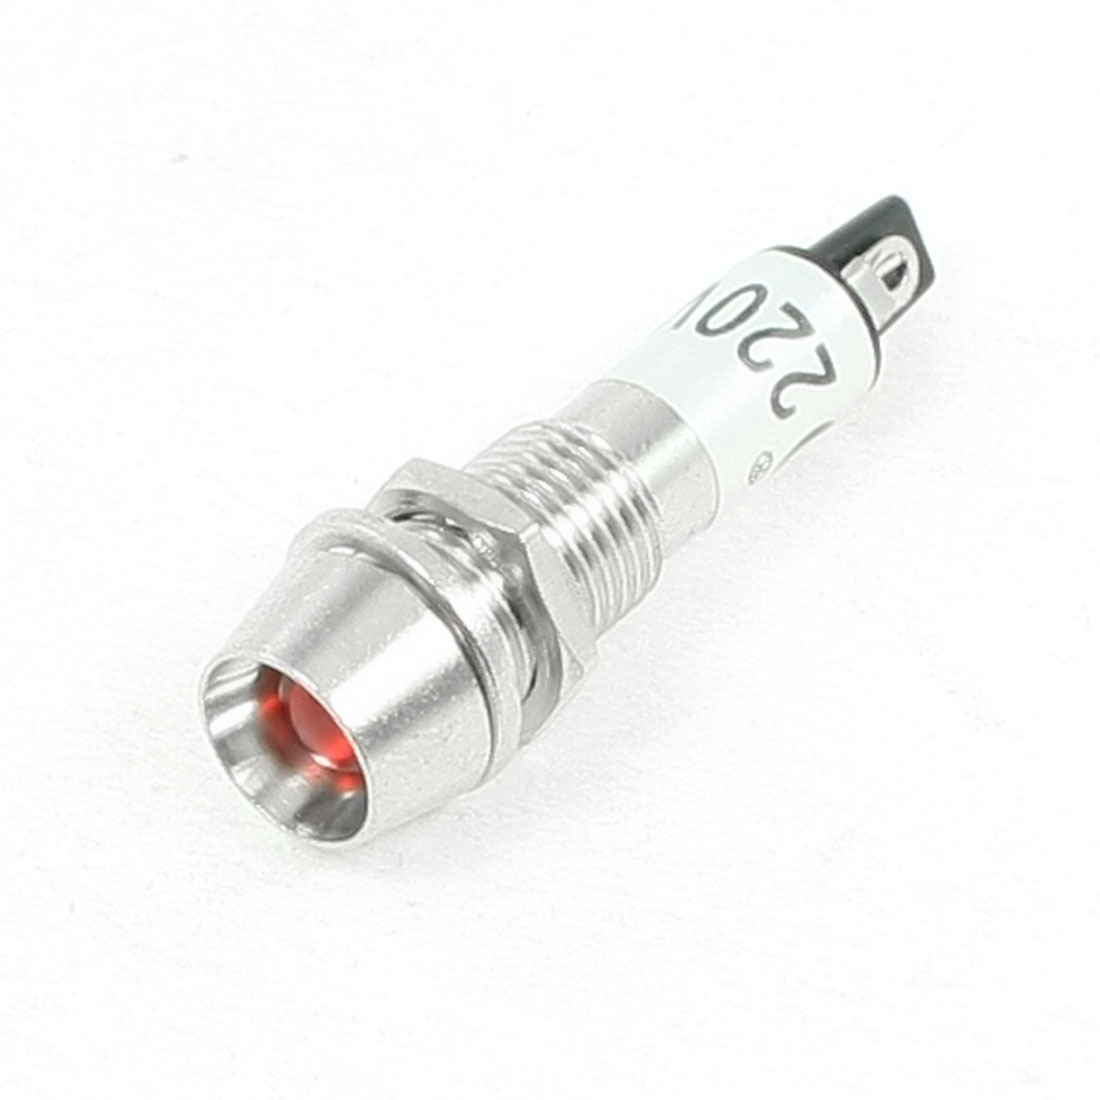 220VAC 7.7mm Thread Red Bulb Power Signal Indicator Pilot Light Lamp XD8-1